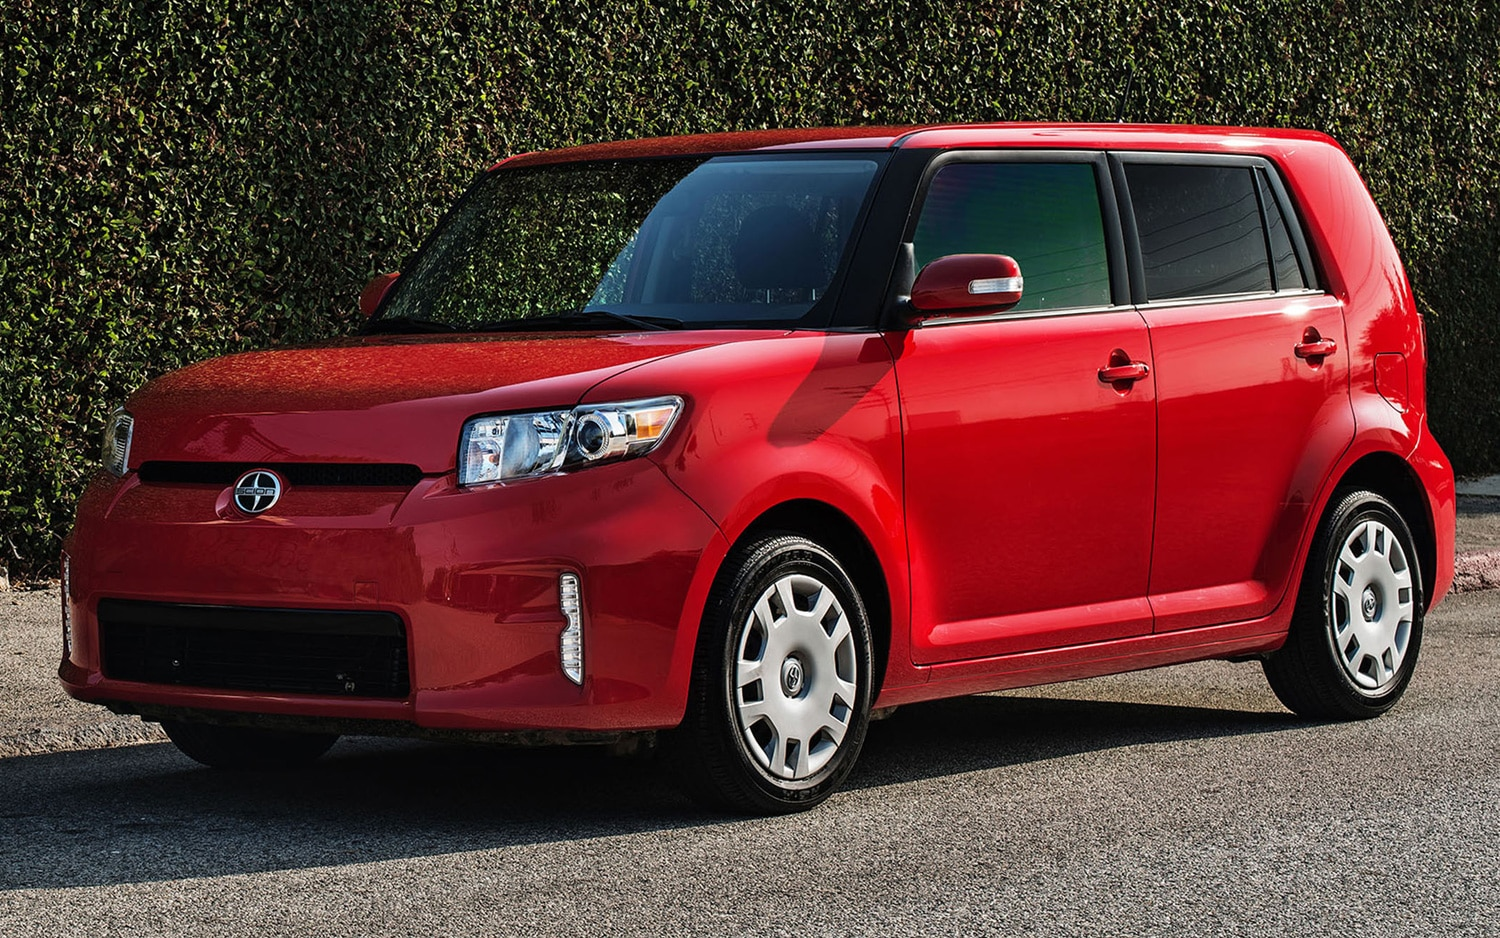 scion tweaks bumpers prices on 2013 xb will buyers bite. Black Bedroom Furniture Sets. Home Design Ideas